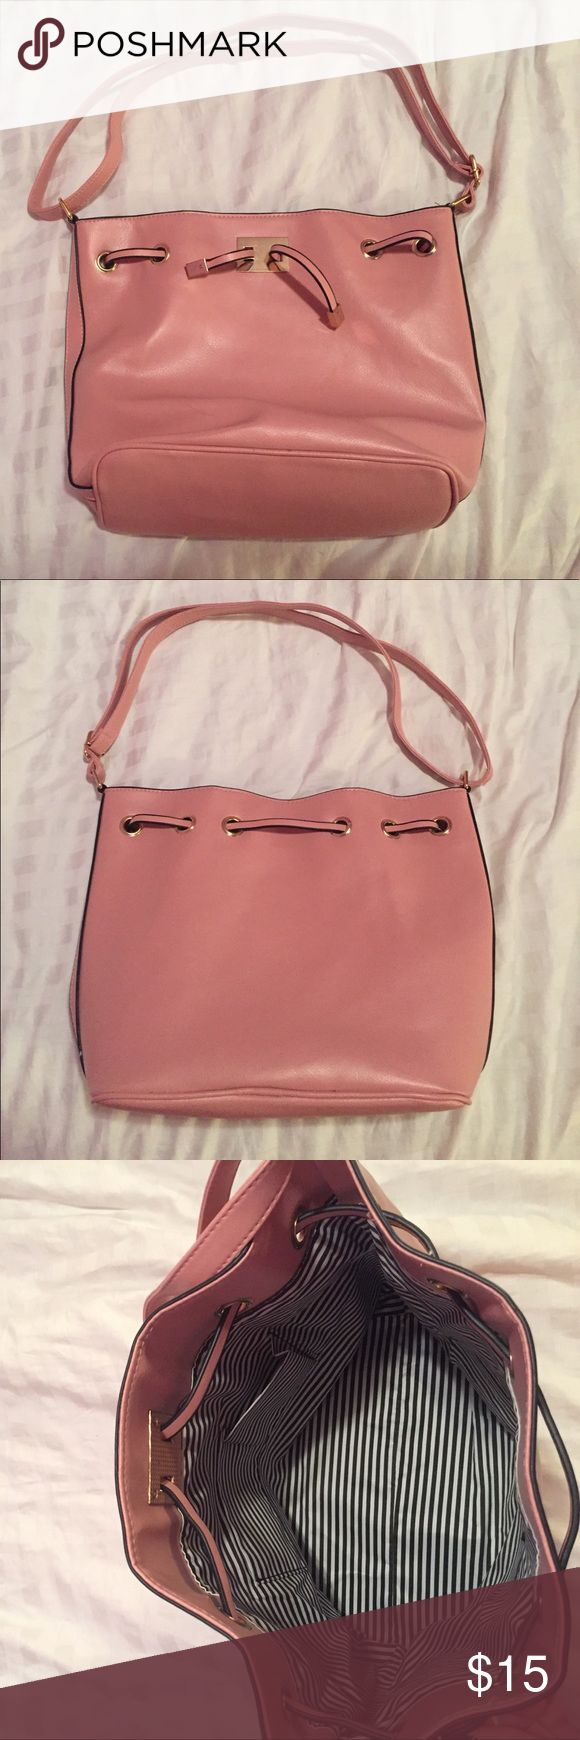 Baby Pink Purse/Tote material feels like leather (it is not) and it has a large inside so lots of room for storage. it is a med-large size bag. never used, great condition. From TJ Maxx. Bags Totes